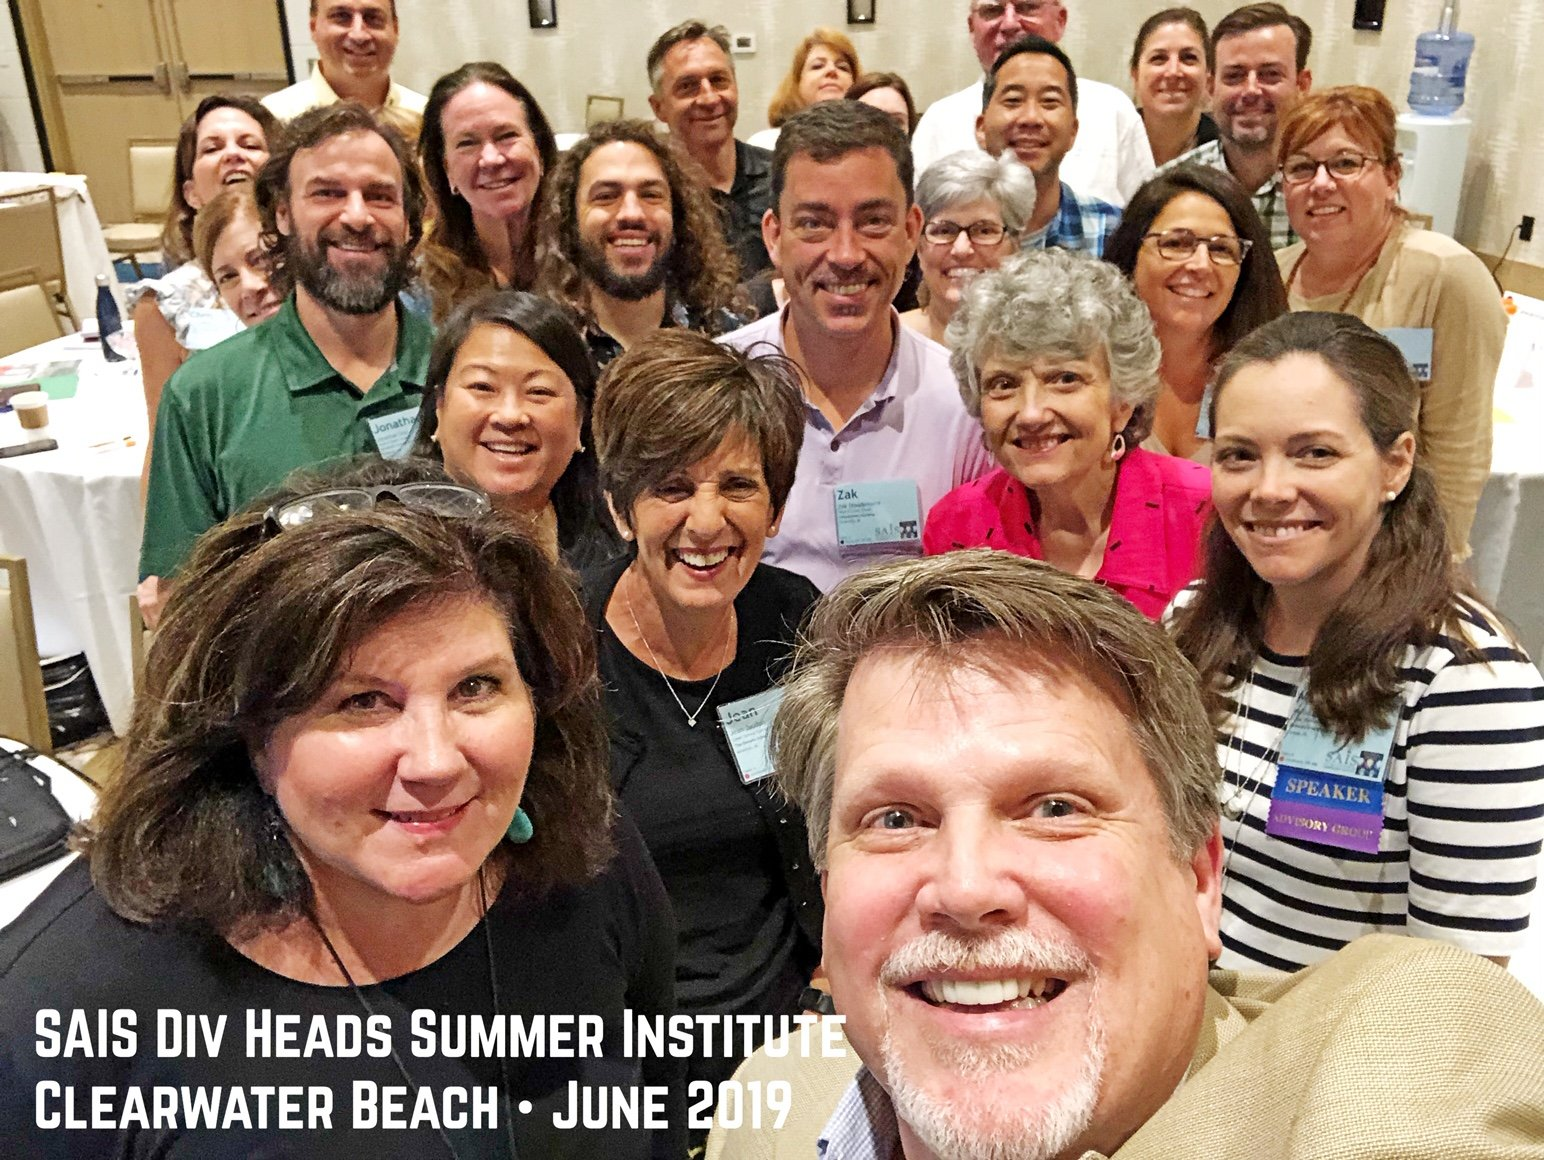 SAIS Div Heads Summer Institute 2019